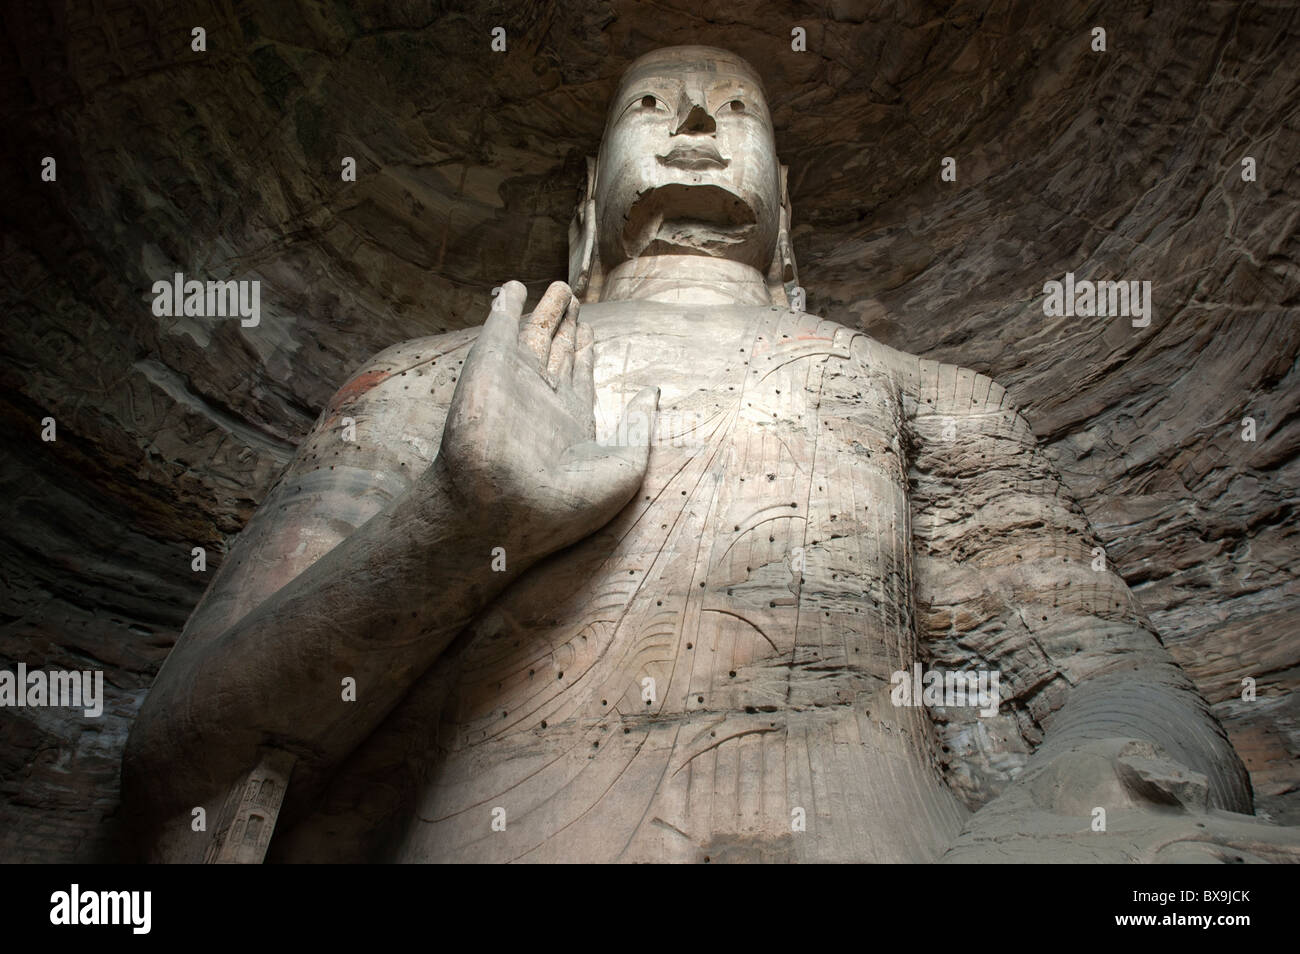 Giant Buddha statue carved inside the ancient Yungang Grottoes, Datong, Shanxi, China. - Stock Image